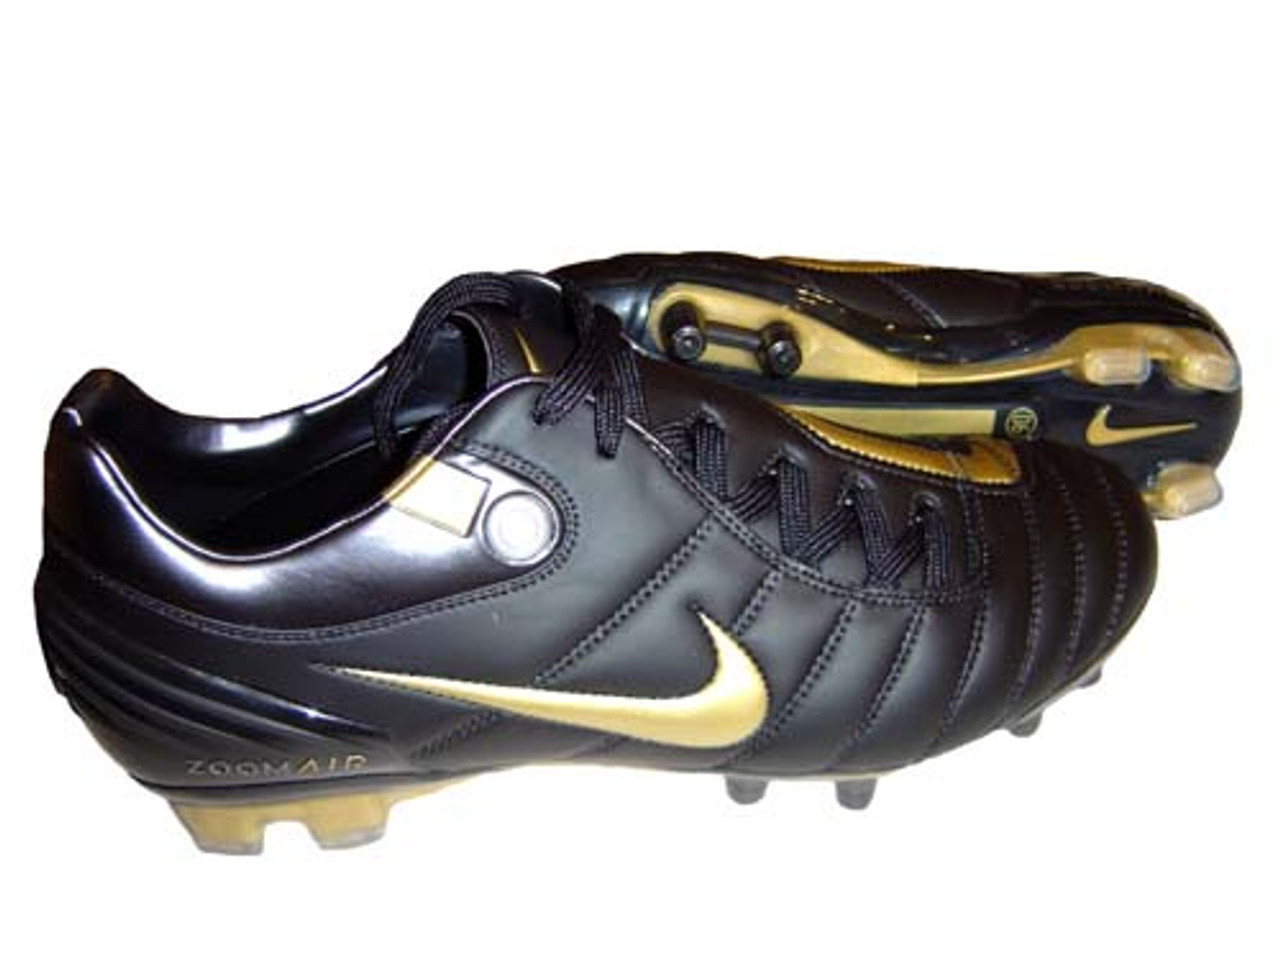 huge selection of 920e4 fc535 NIKE AIR ZOOM TOTAL 90 SUPREMACY BLACK/GOLD